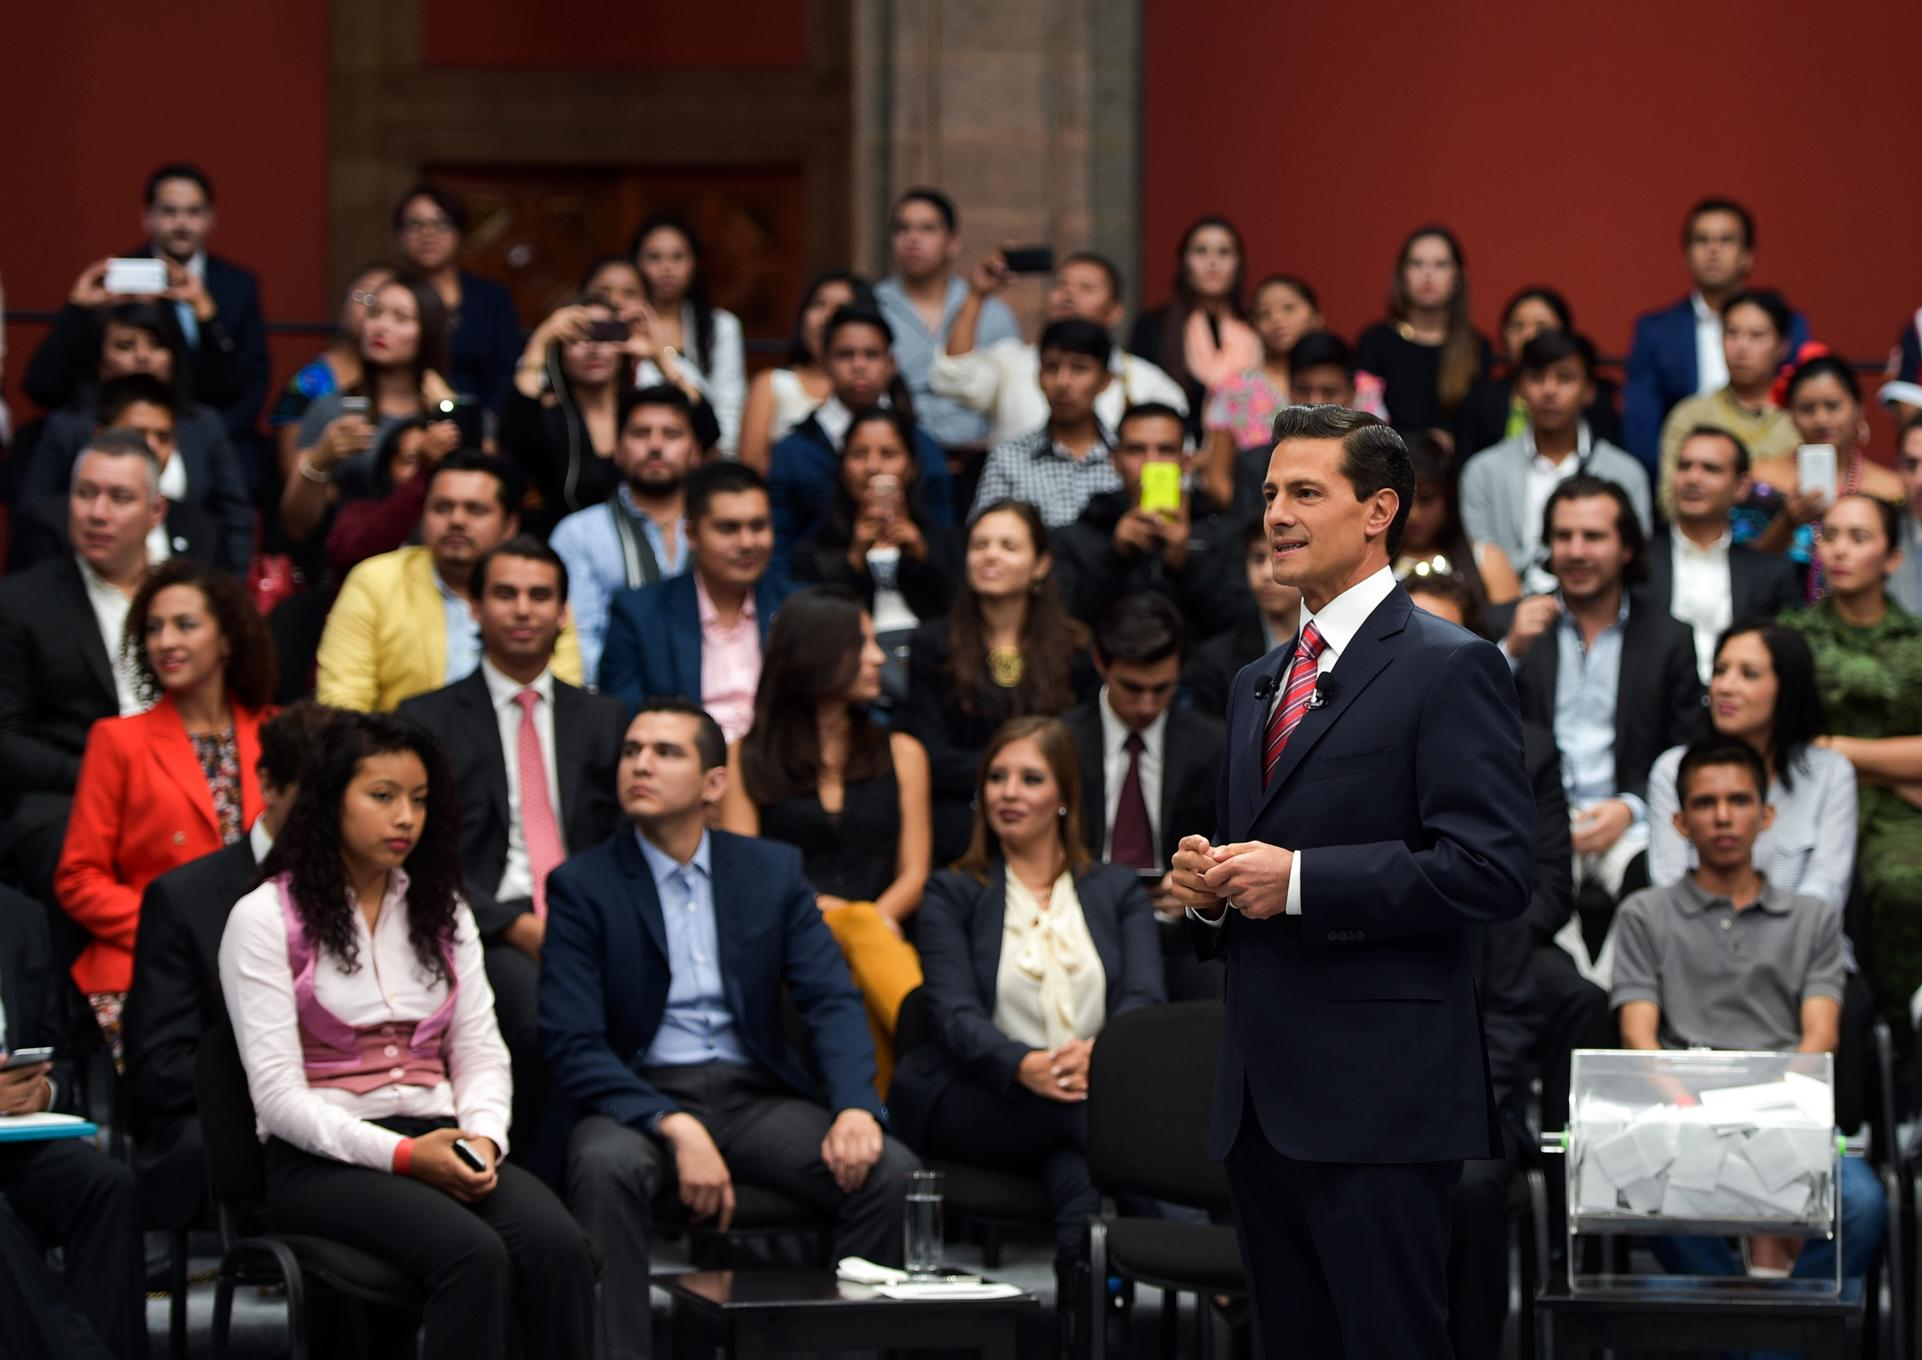 As regards security, President Peña Nieto highlighted crime prevention work and the use of technology against organized crime.